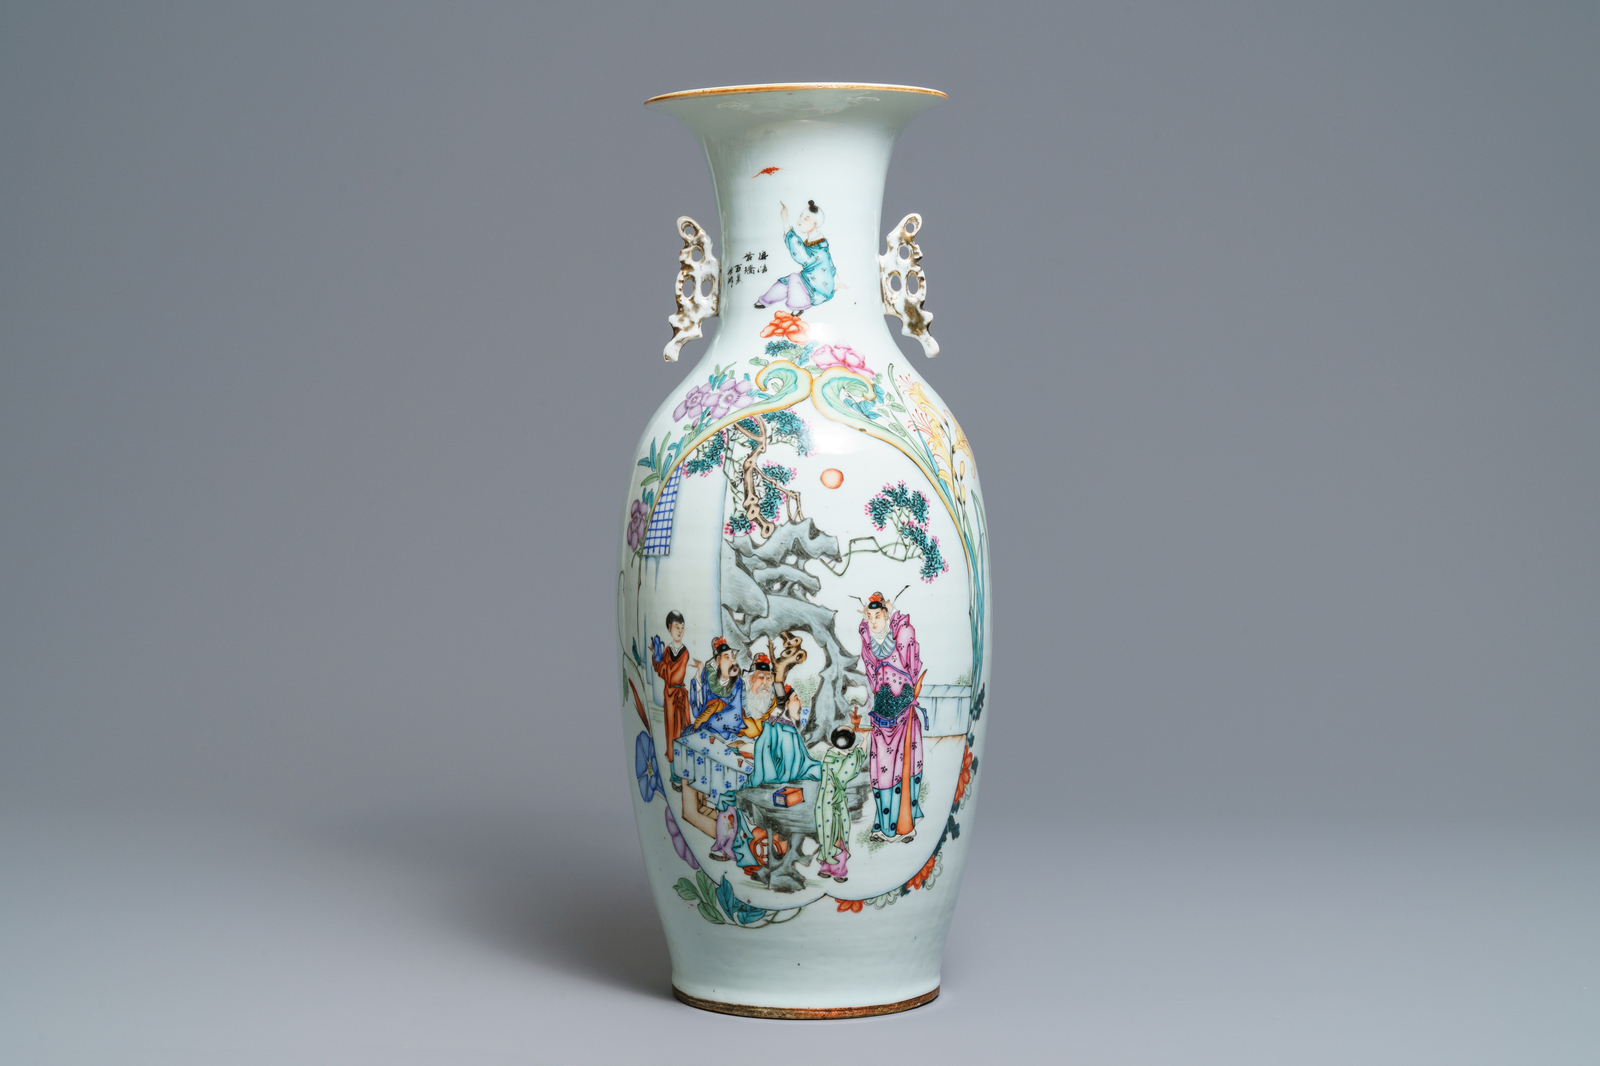 Lot 60 - A fine Chinese famille rose two-sided design vase, 19/20th C.